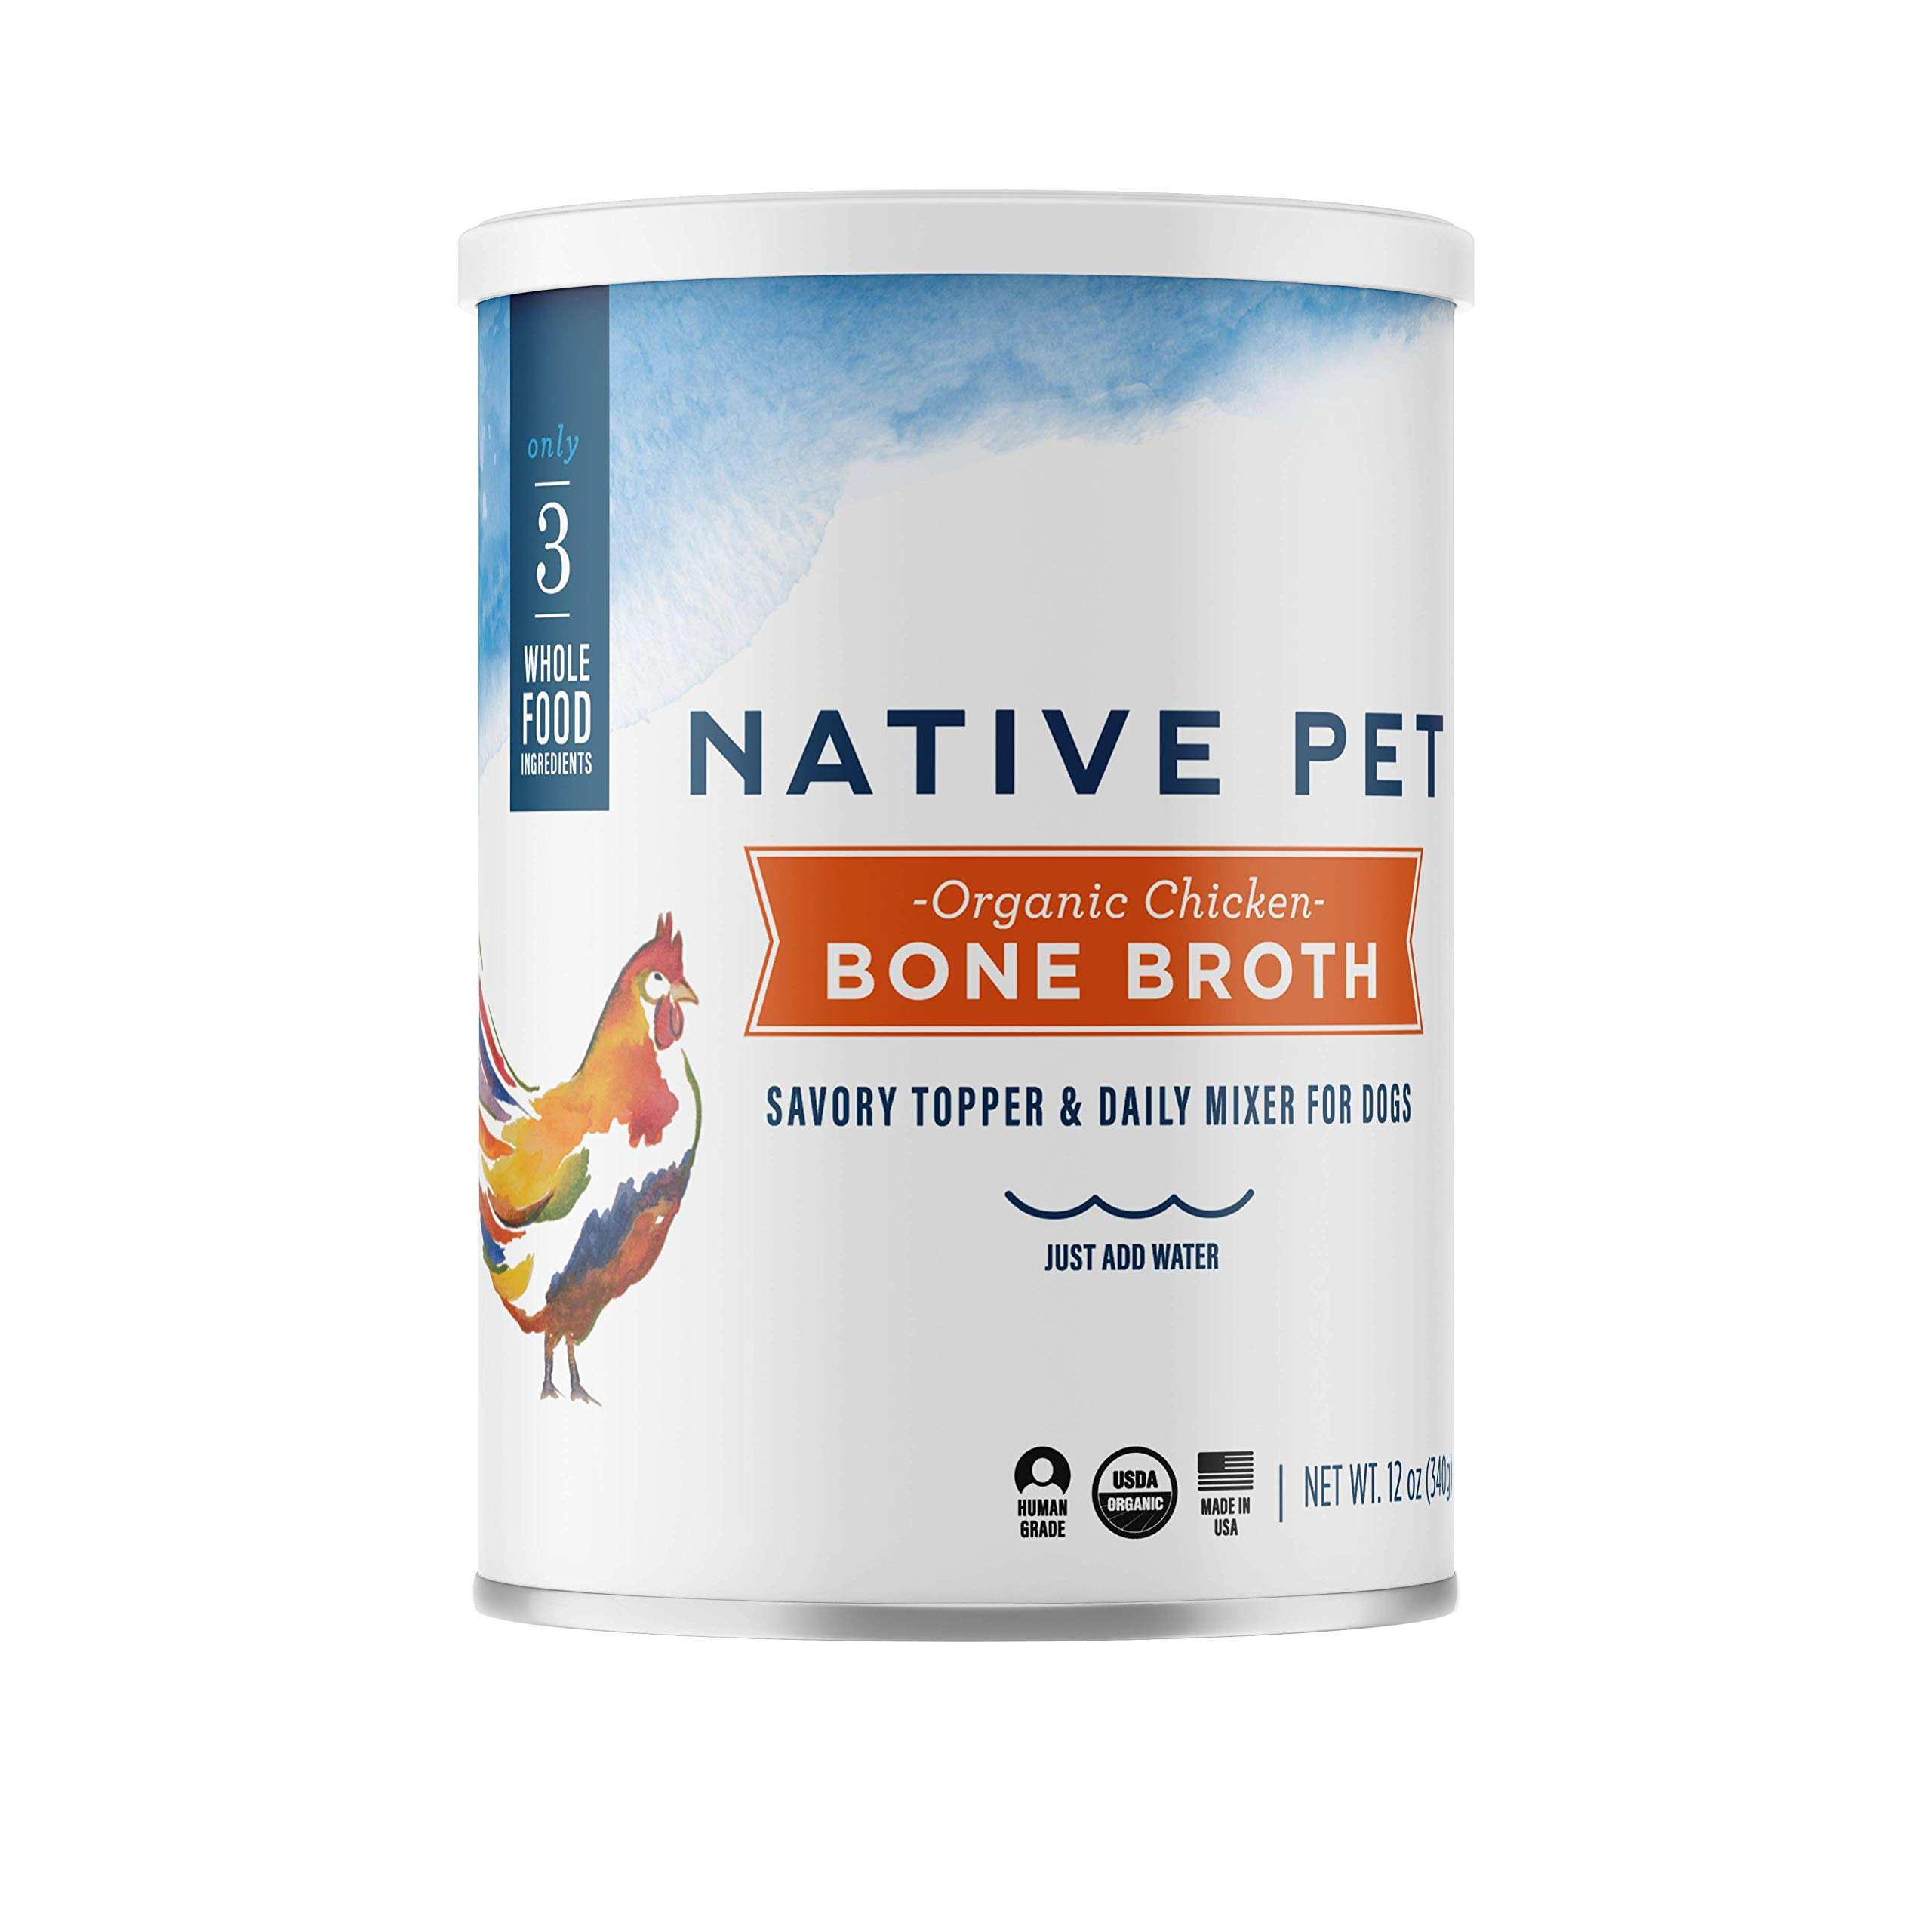 Native Pet Organic Bone Broth for Dogs and Cats - Human Grade Protein Powder & Rich Source of Collagen for Dogs - Food Mixer and Topper with Chicken and Sweet Potato